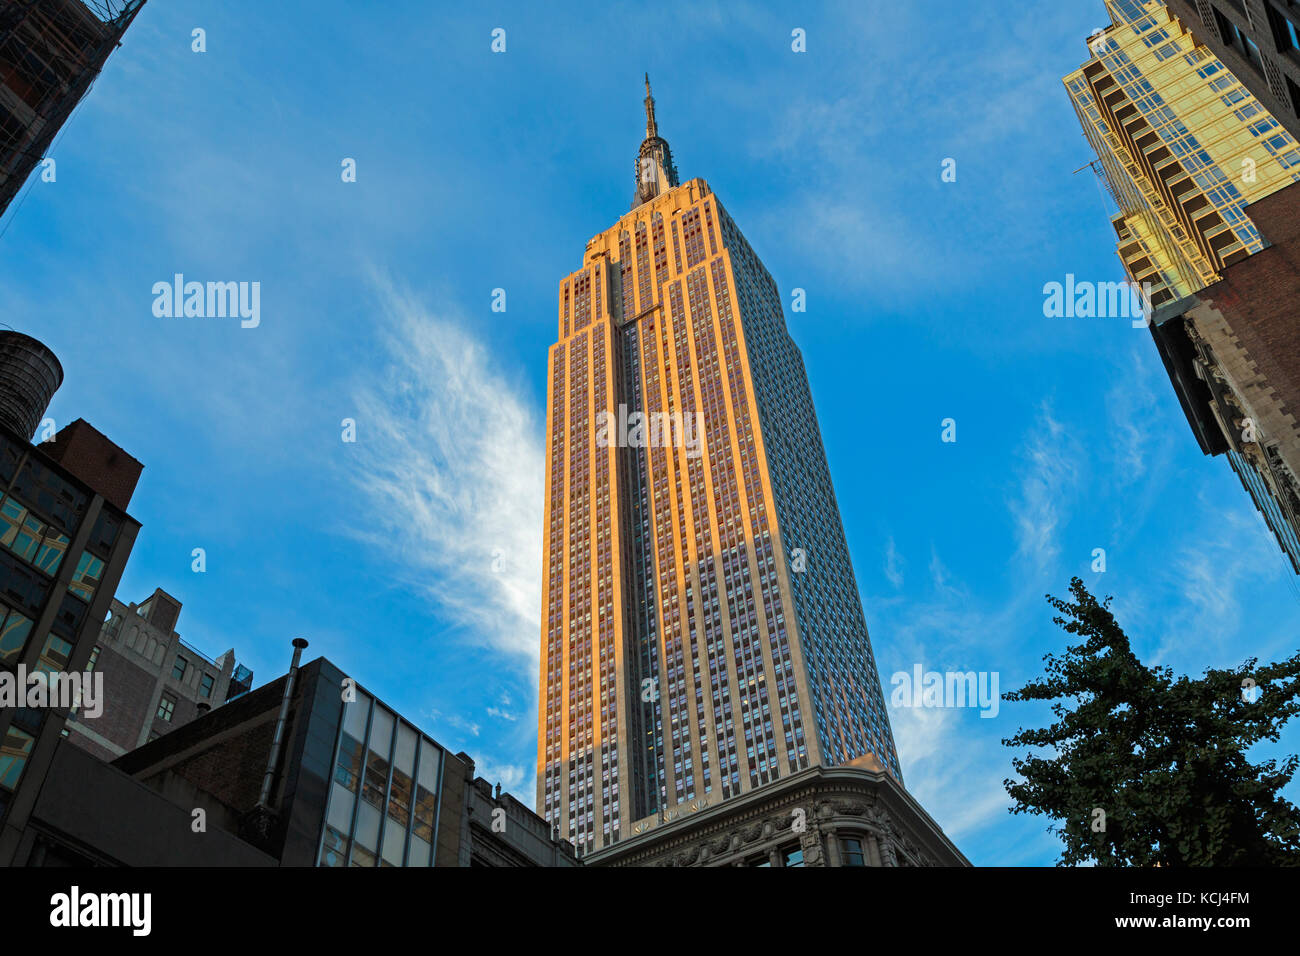 New York City, New York State, United States of America.  The Empire State Building skyscraper. Stock Photo